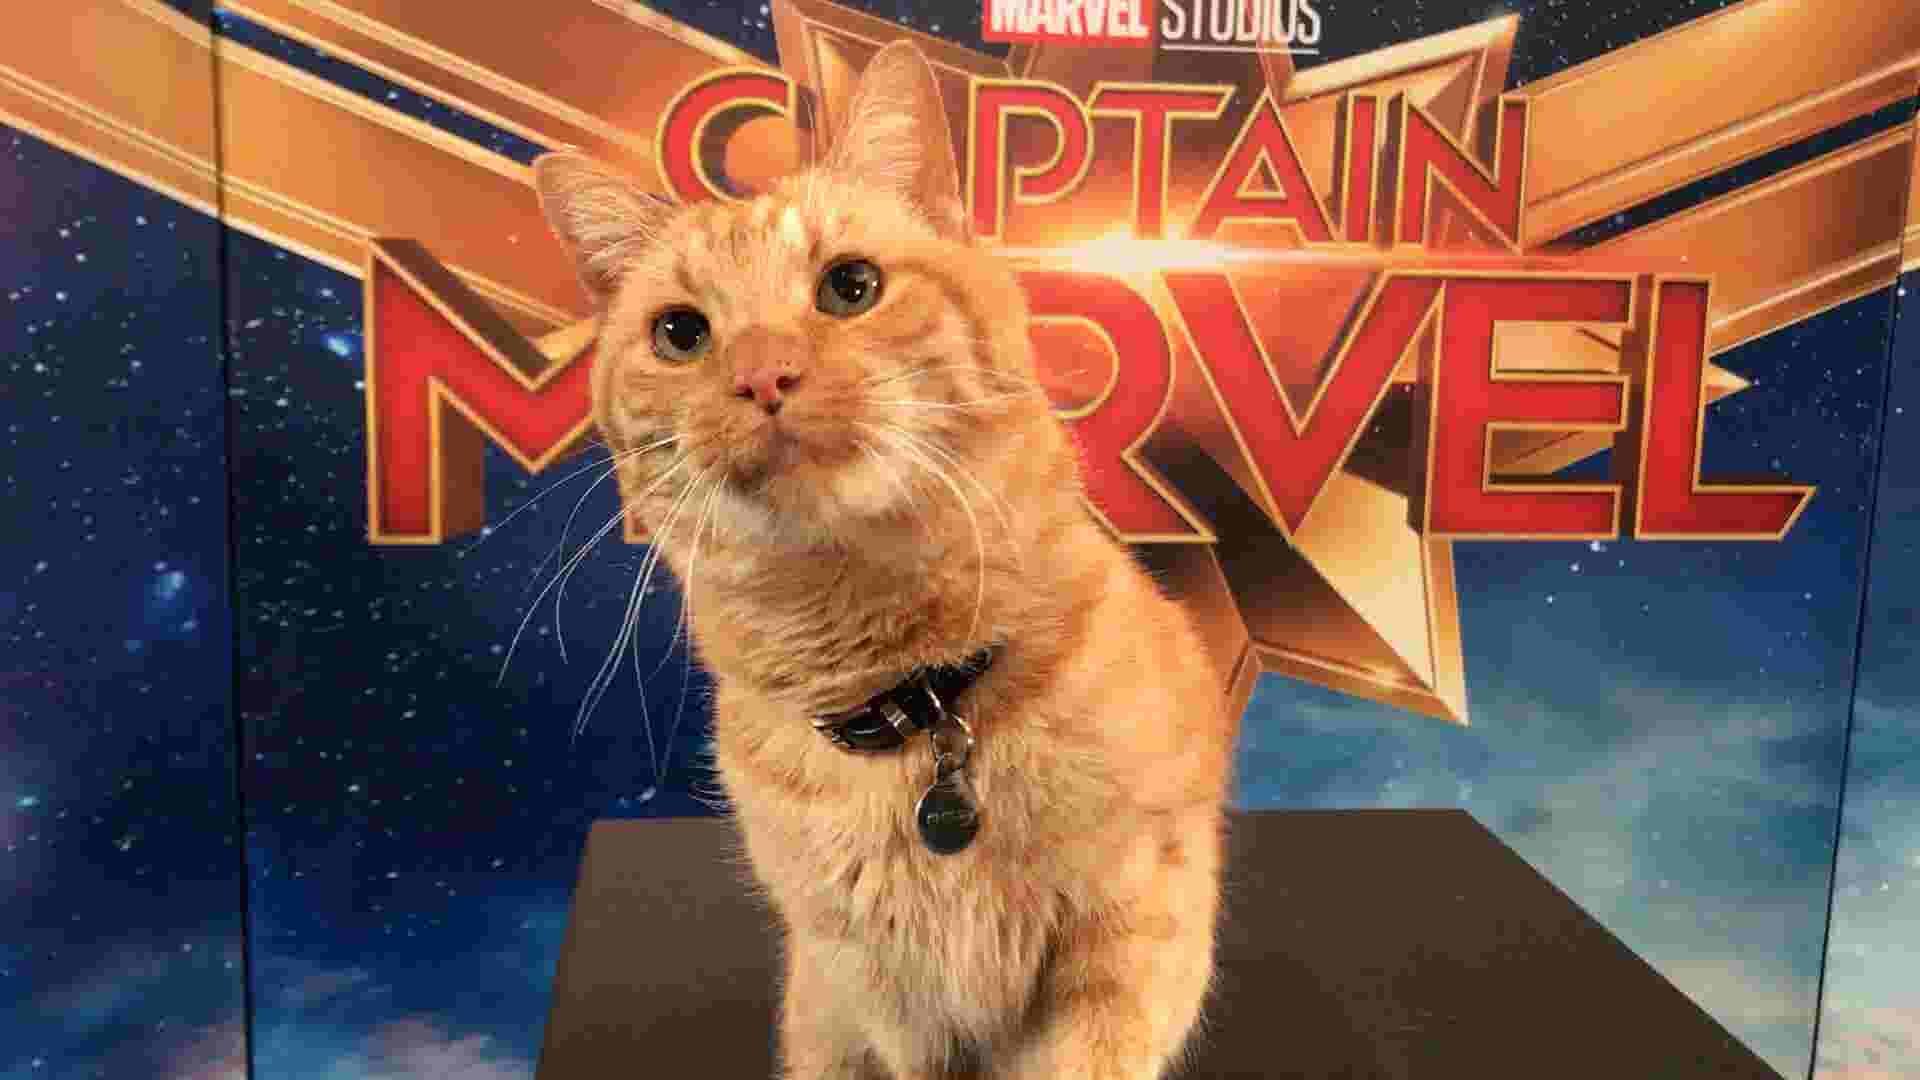 goose the cat steals the spotlight in 'captain marvel'